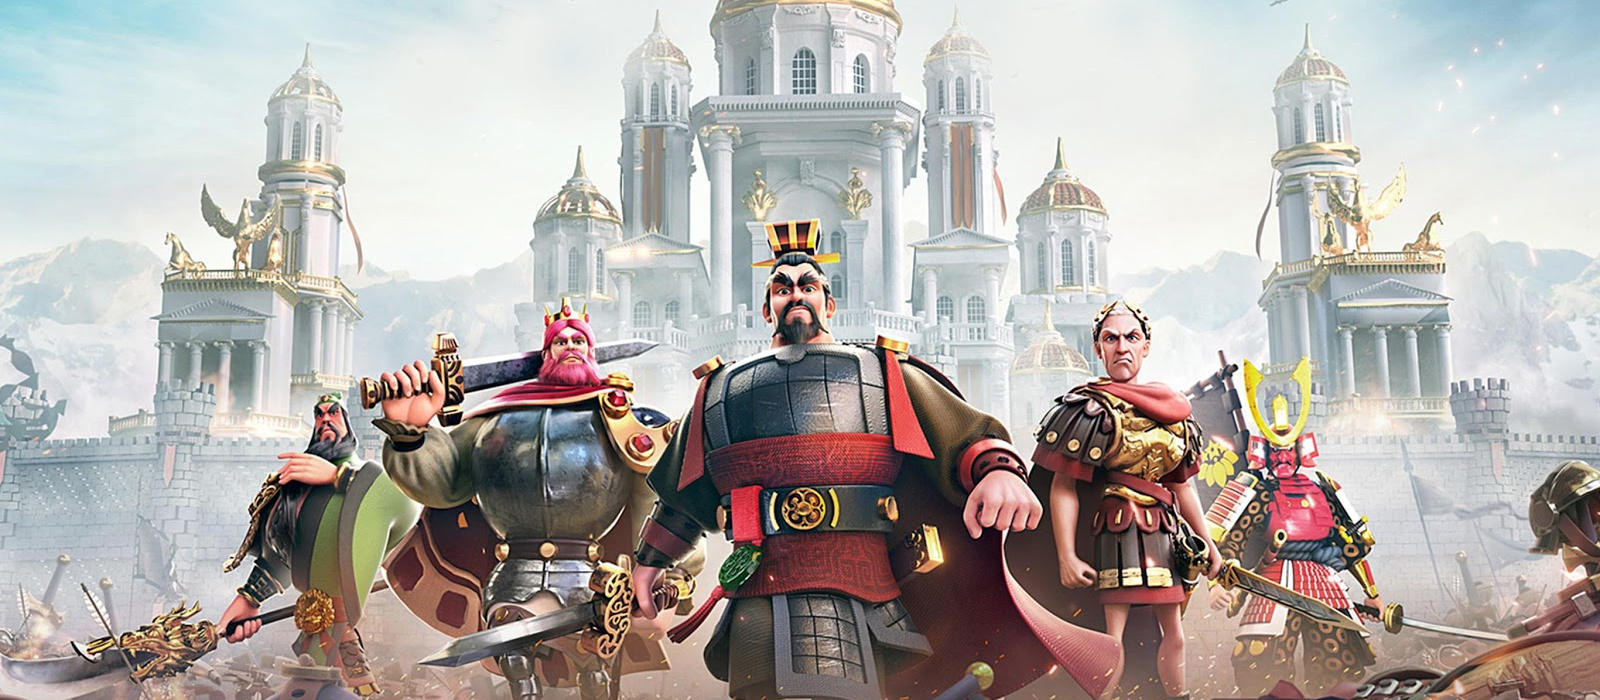 The most powerful commanders in Rise of Kingdoms: Lost Crusade. Commander bundles for effective play